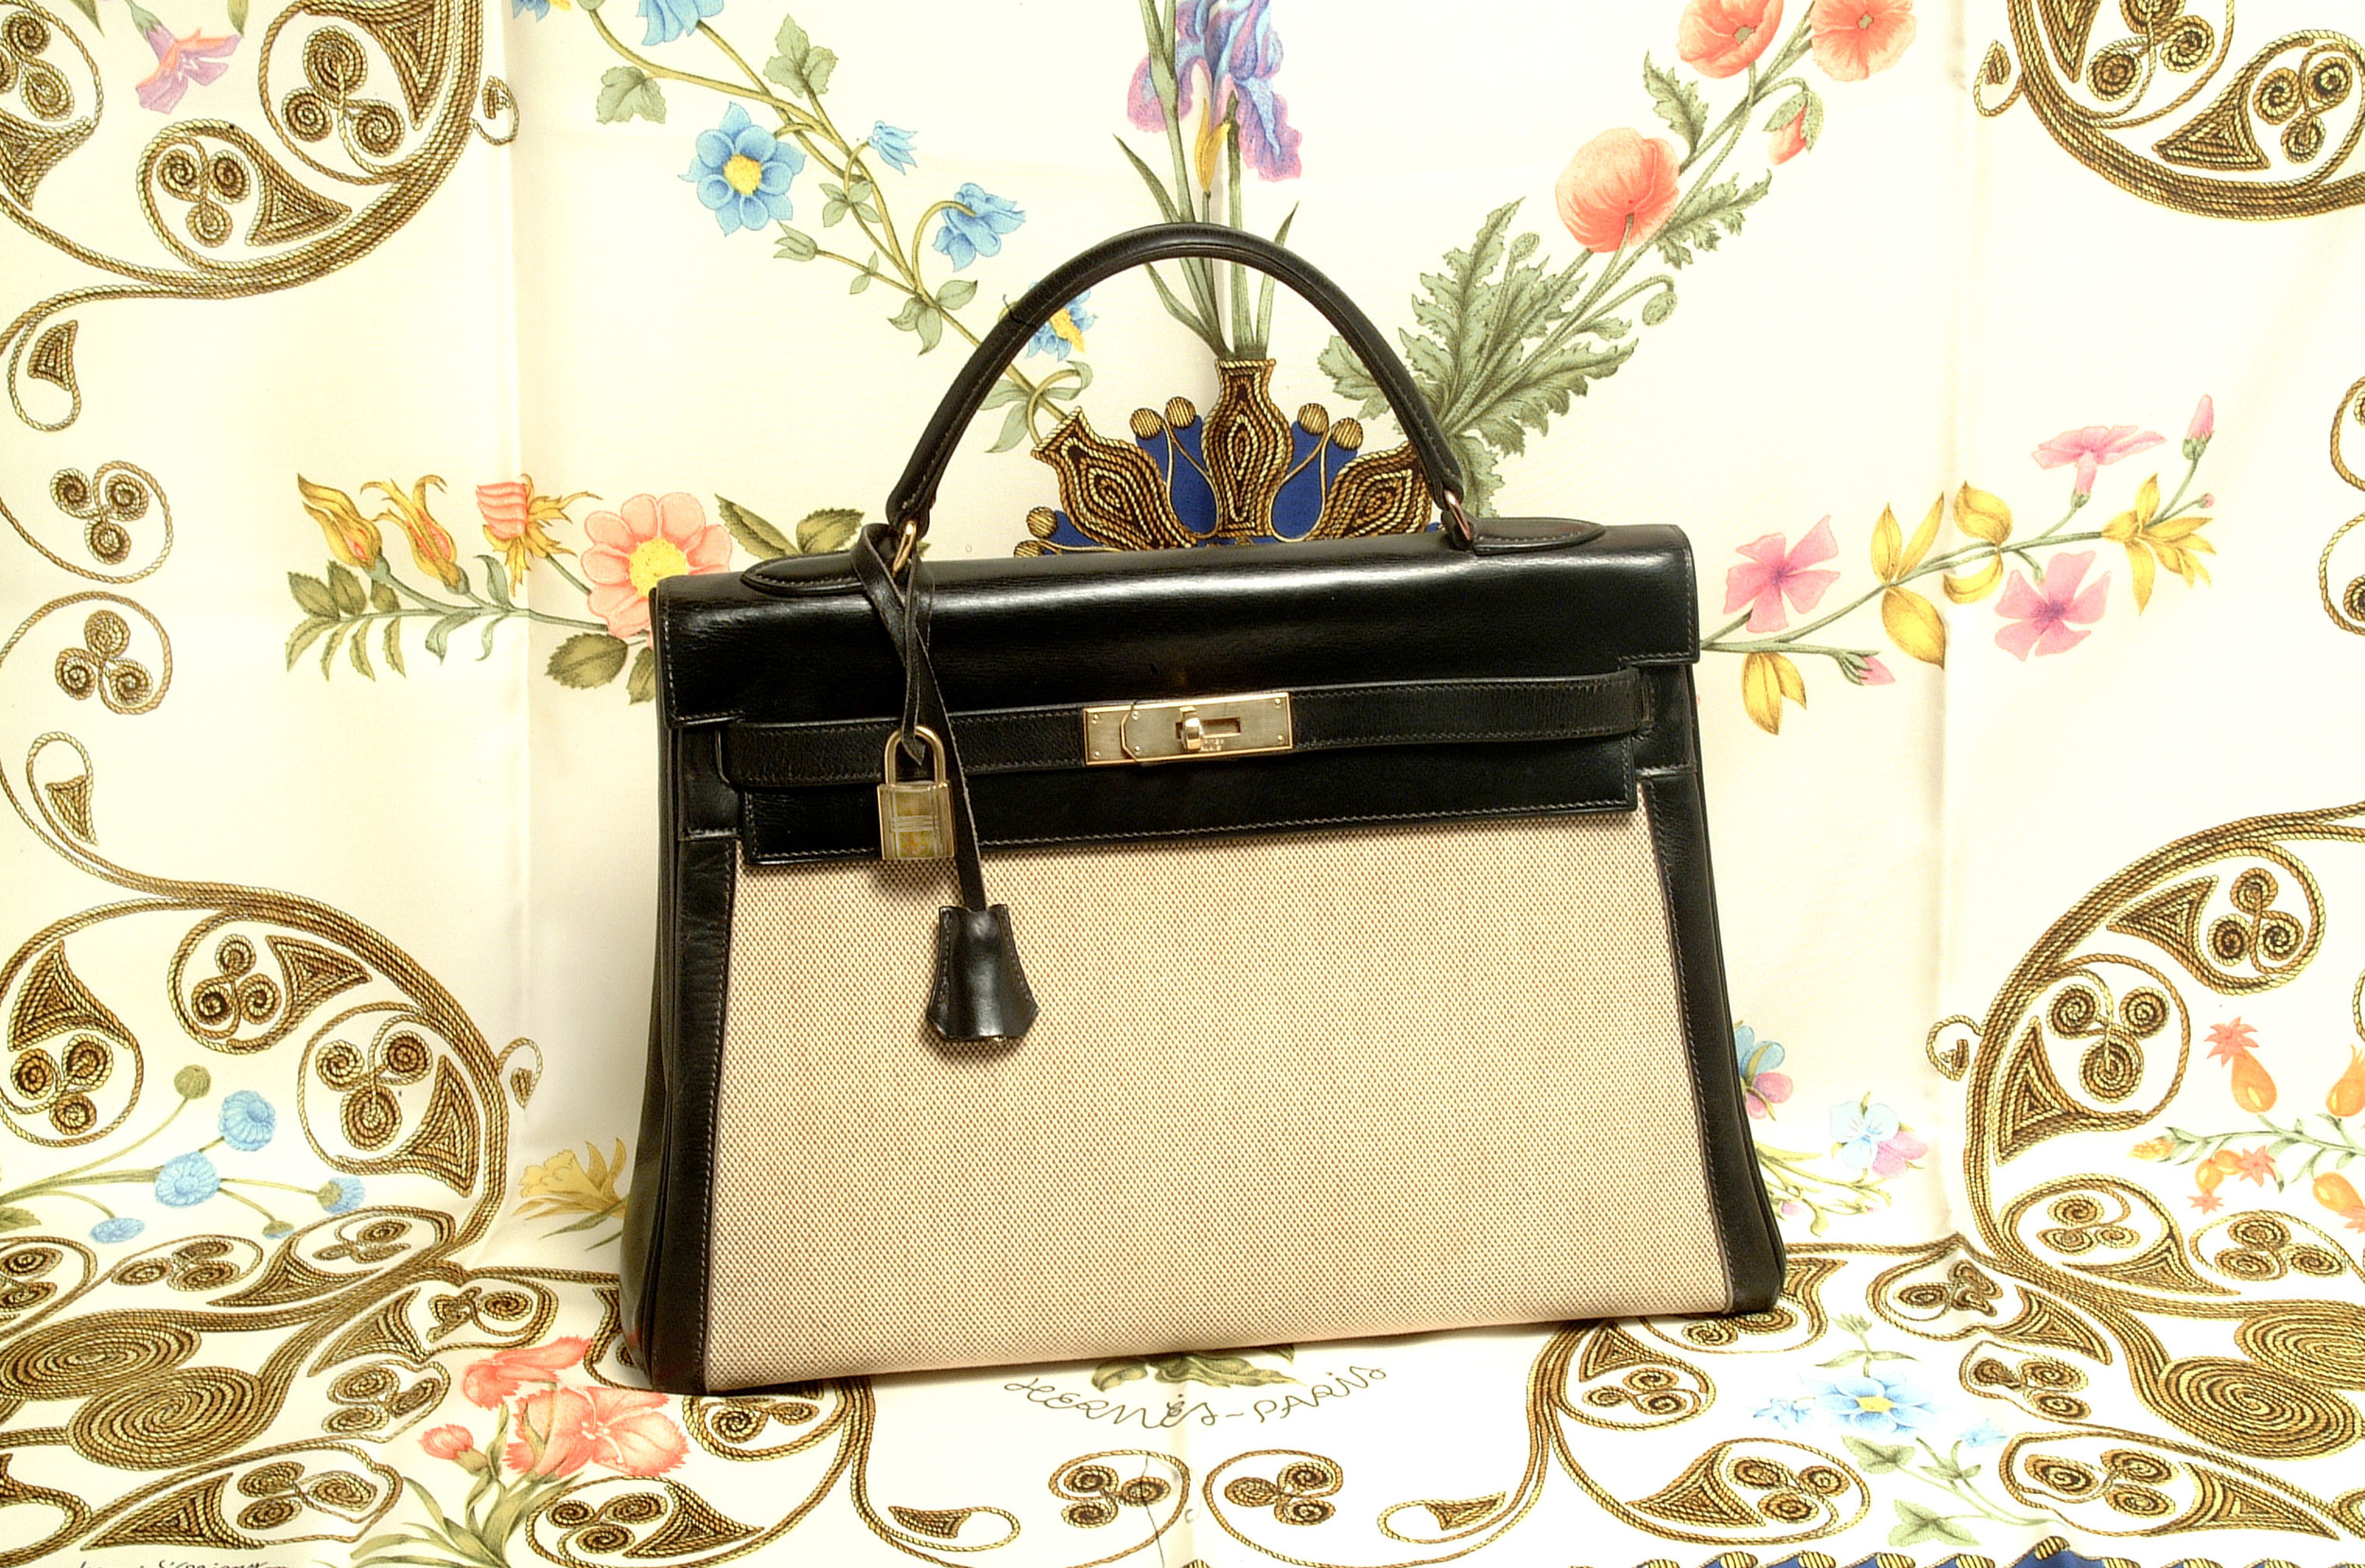 A very elegant Hermès bag for all season and time